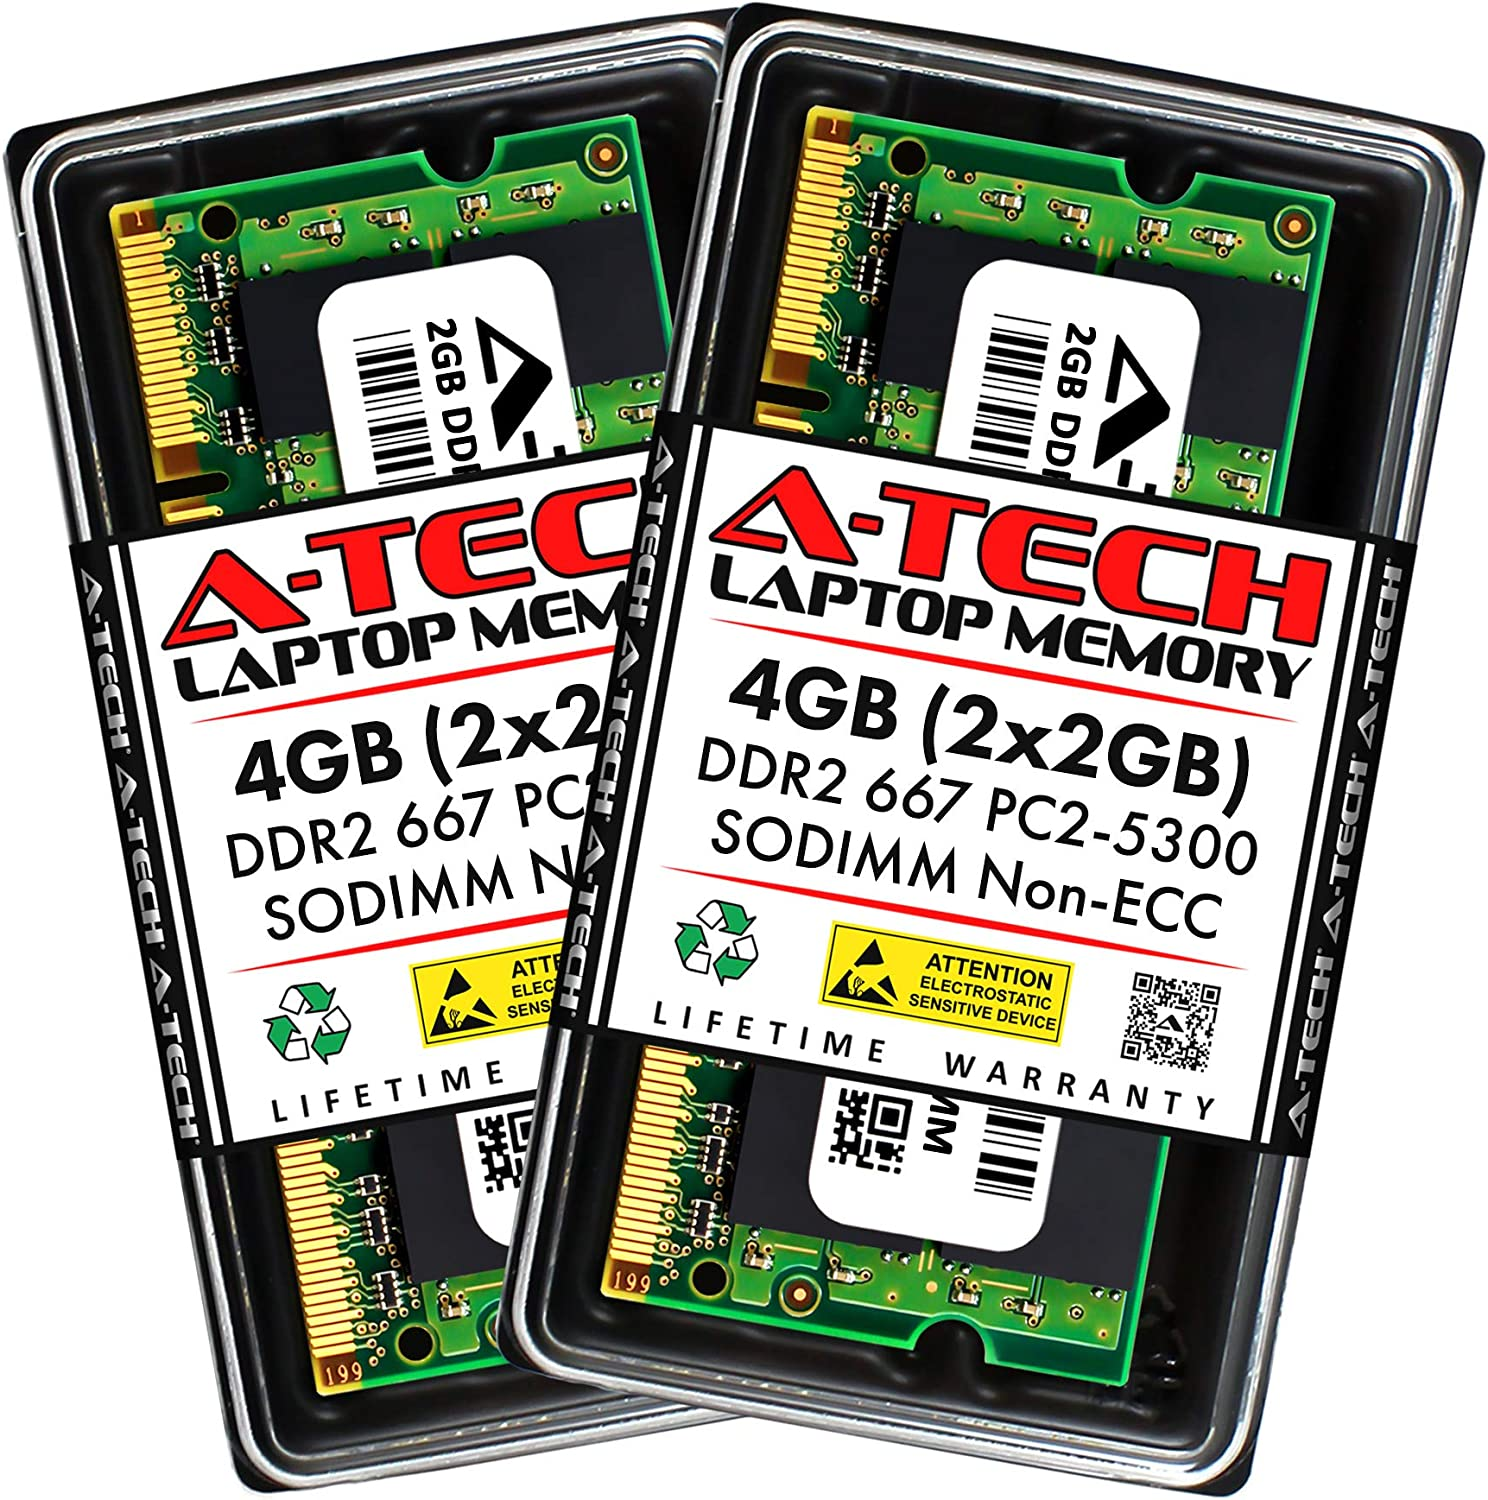 A-Tech 4GB (2x2GB) DDR2 667MHz SODIMM PC2-5300 1.8V CL5 200-Pin Non-ECC Unbuffered Laptop RAM Memory Upgrade Kit